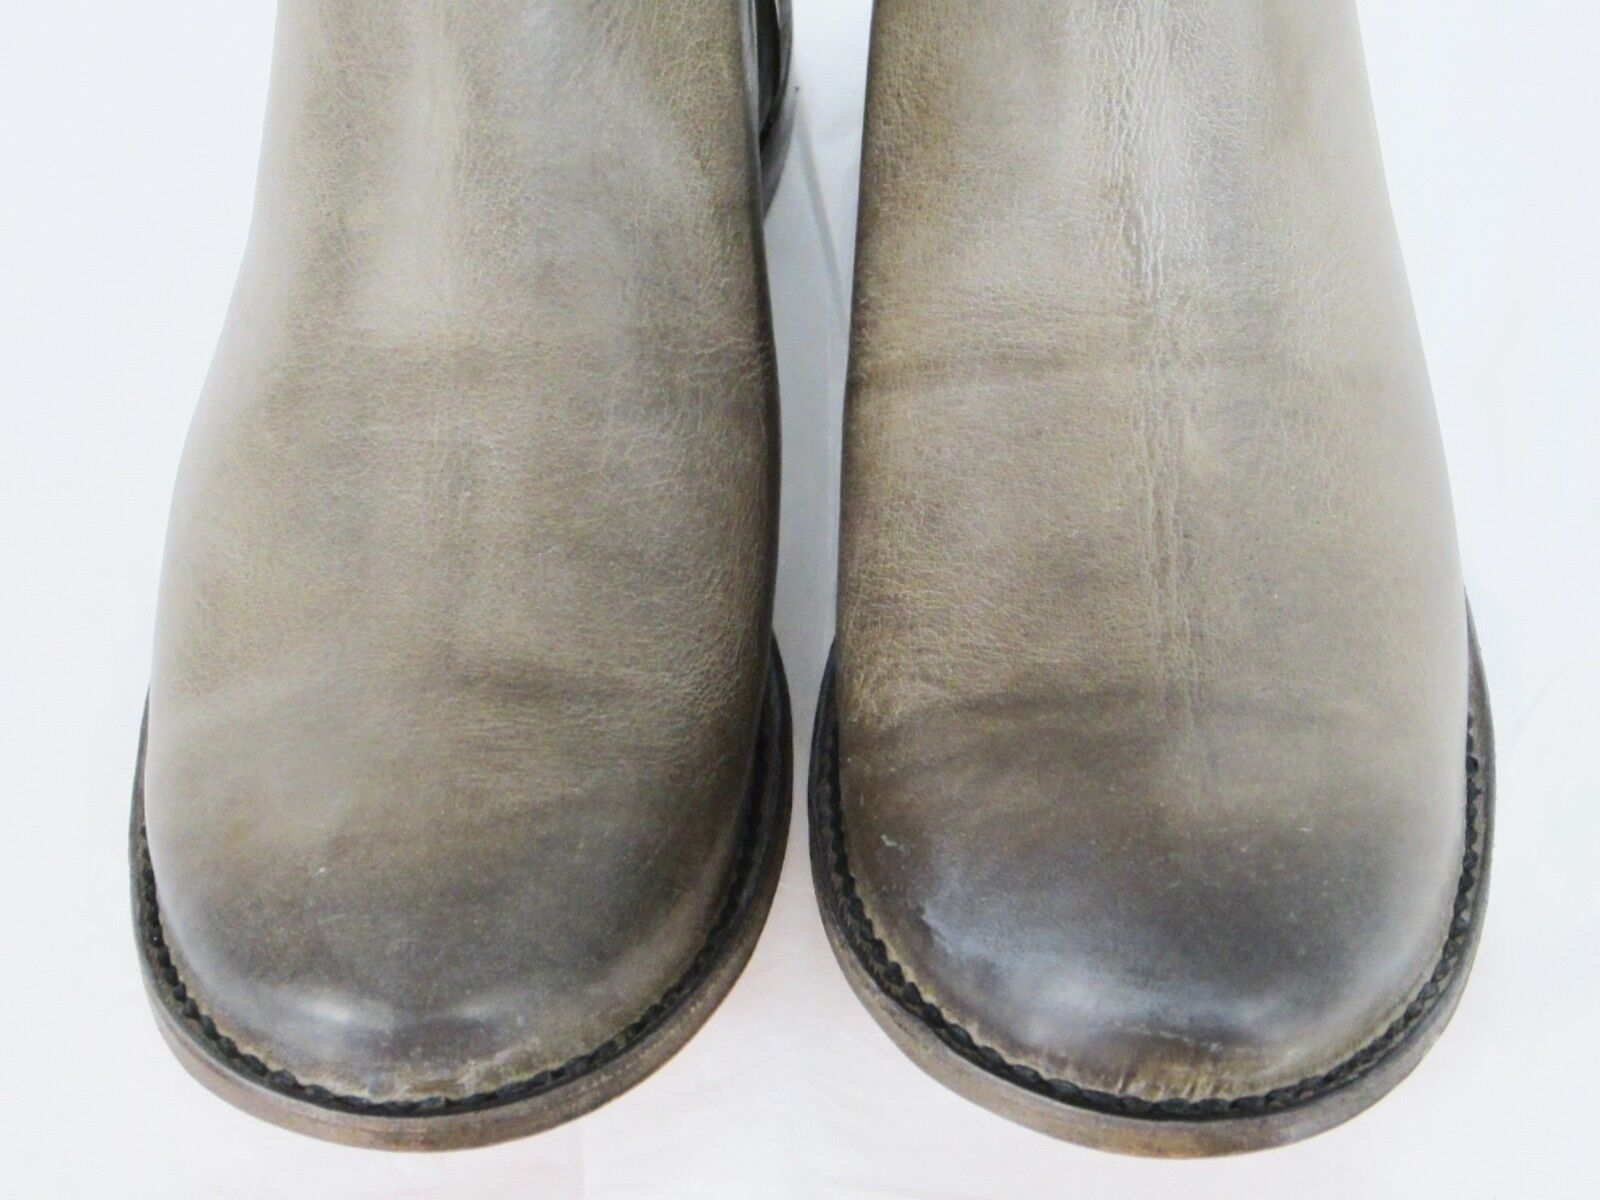 FRYE BOOTS Paige Tall Riding Grey Grey Grey Leather Boots 77534 SZ 5.5  388 97471b